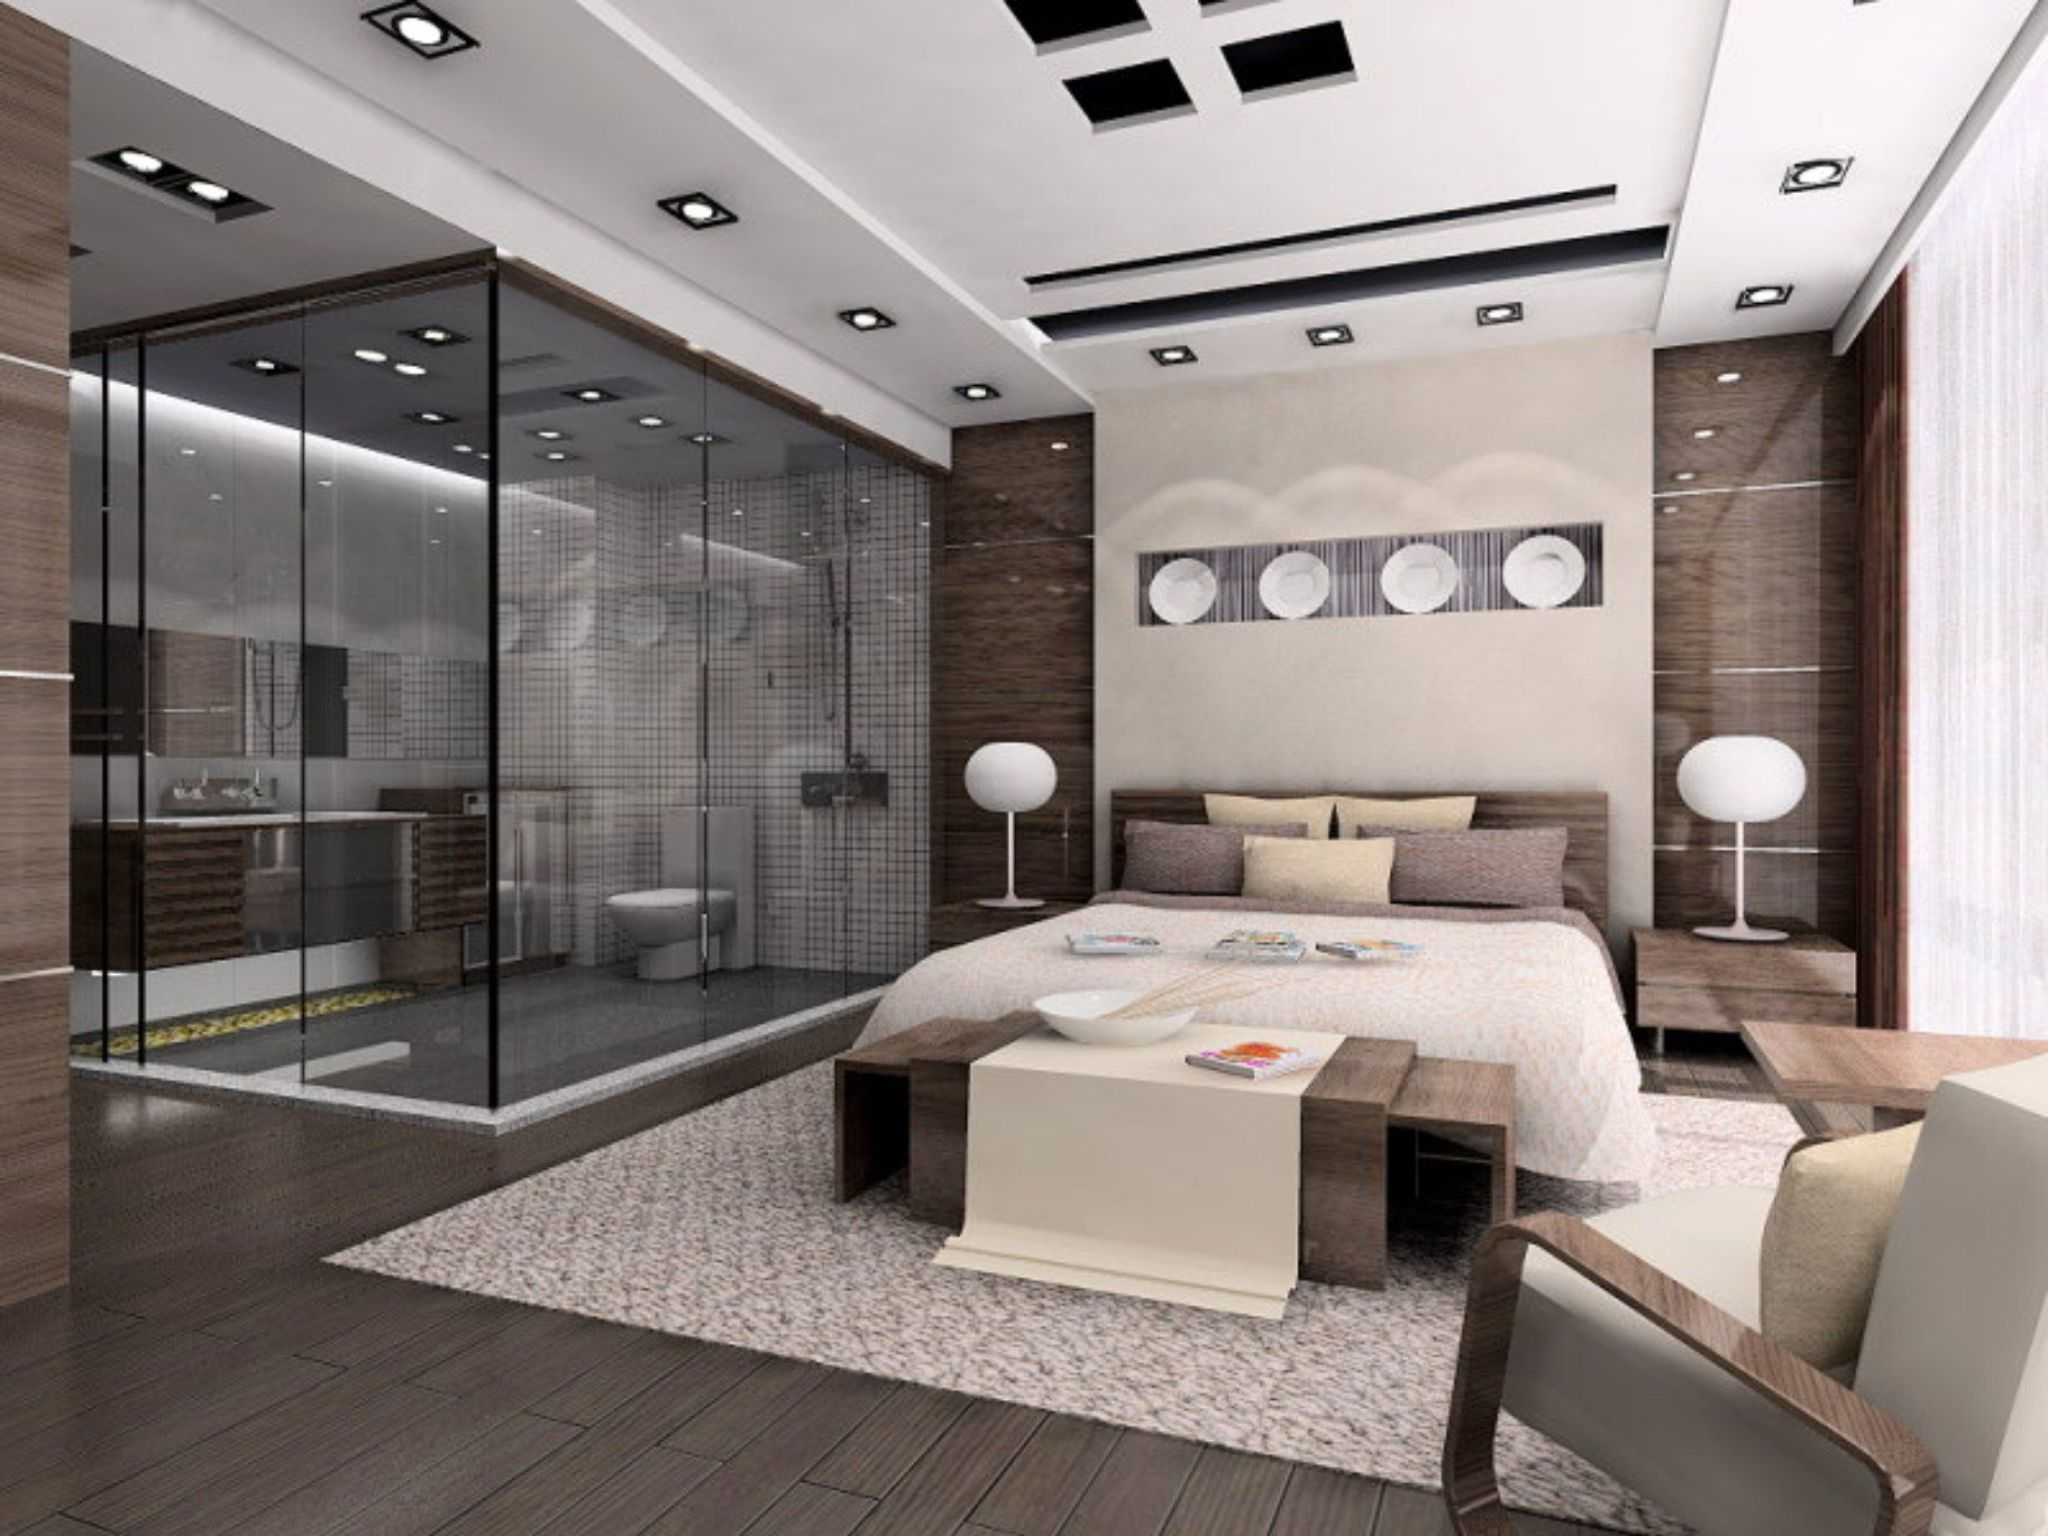 Incorporate Bedroom and Bathroom